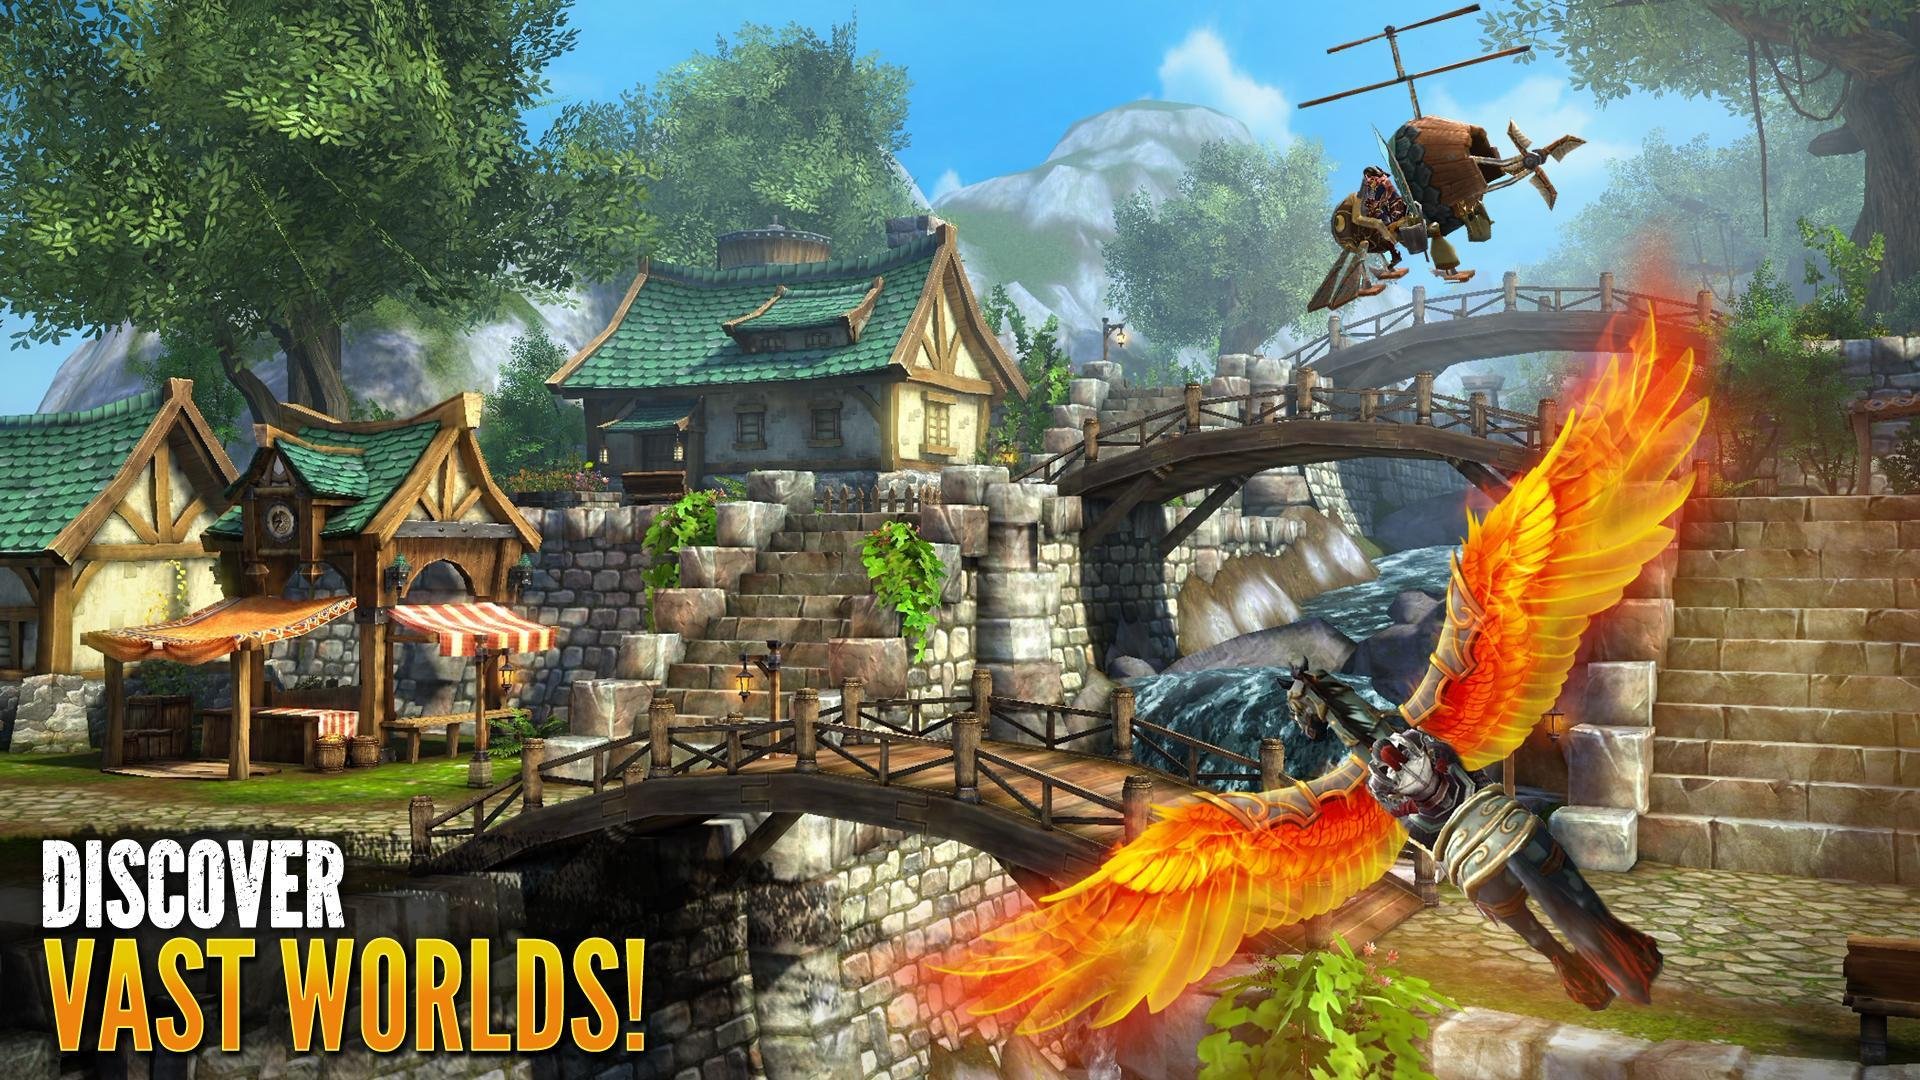 Order & Chaos 2: 3D MMO RPG for Android - APK Download